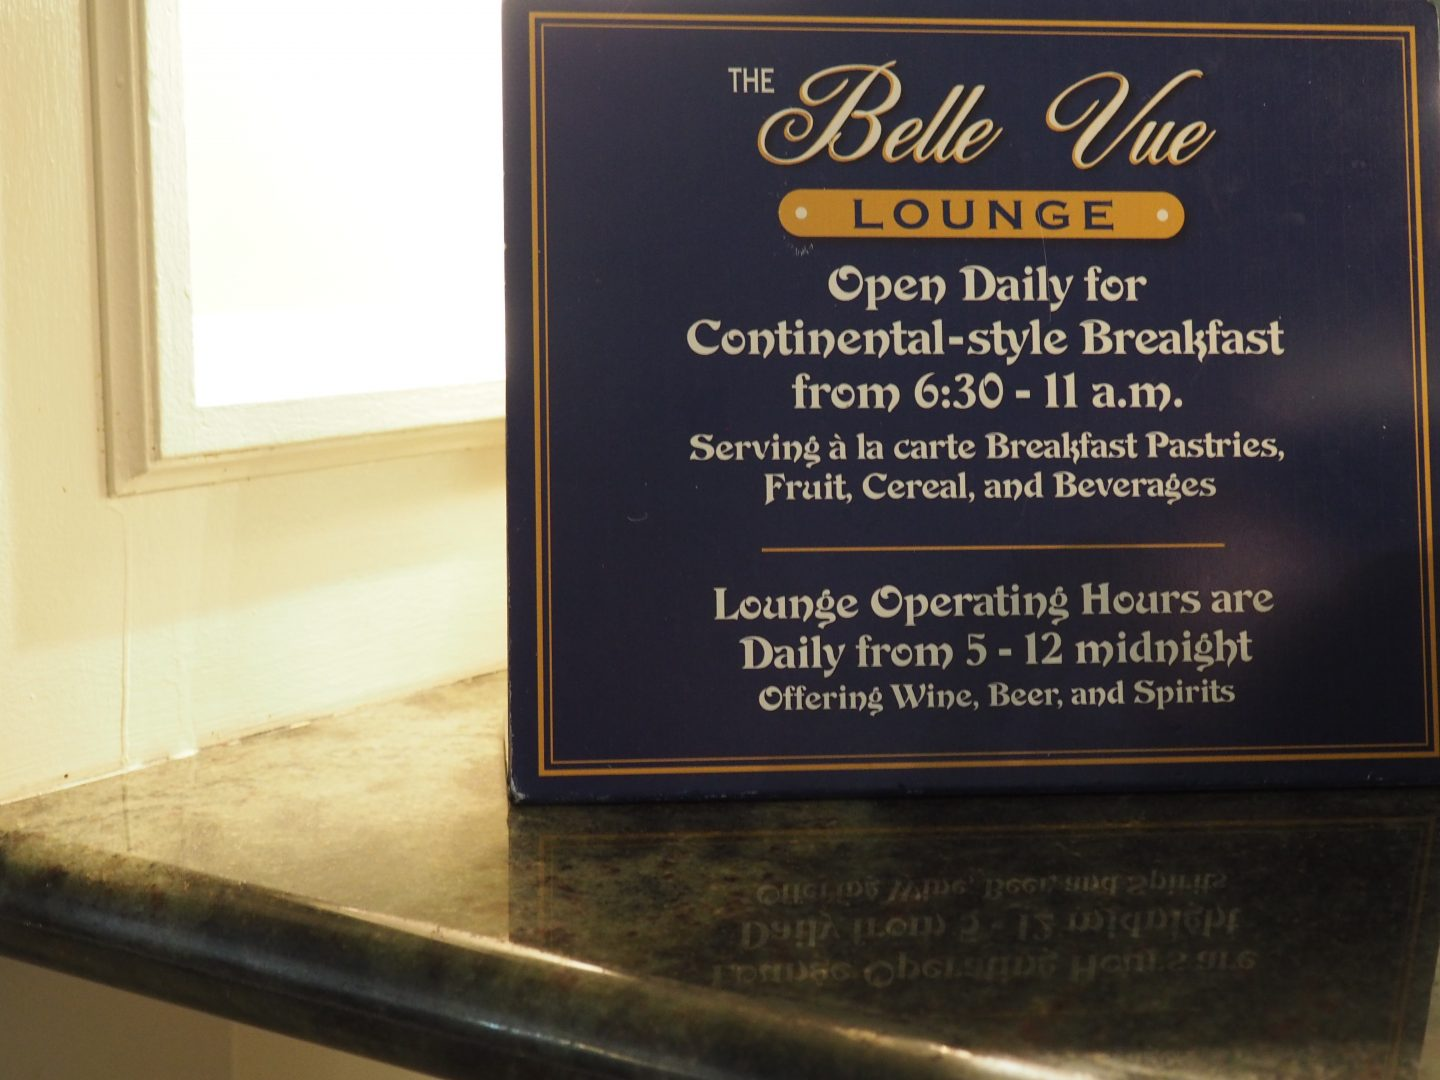 belle vue lounge hours, belle vue lounge breakfast belle vue lounge boardwalk breakfast